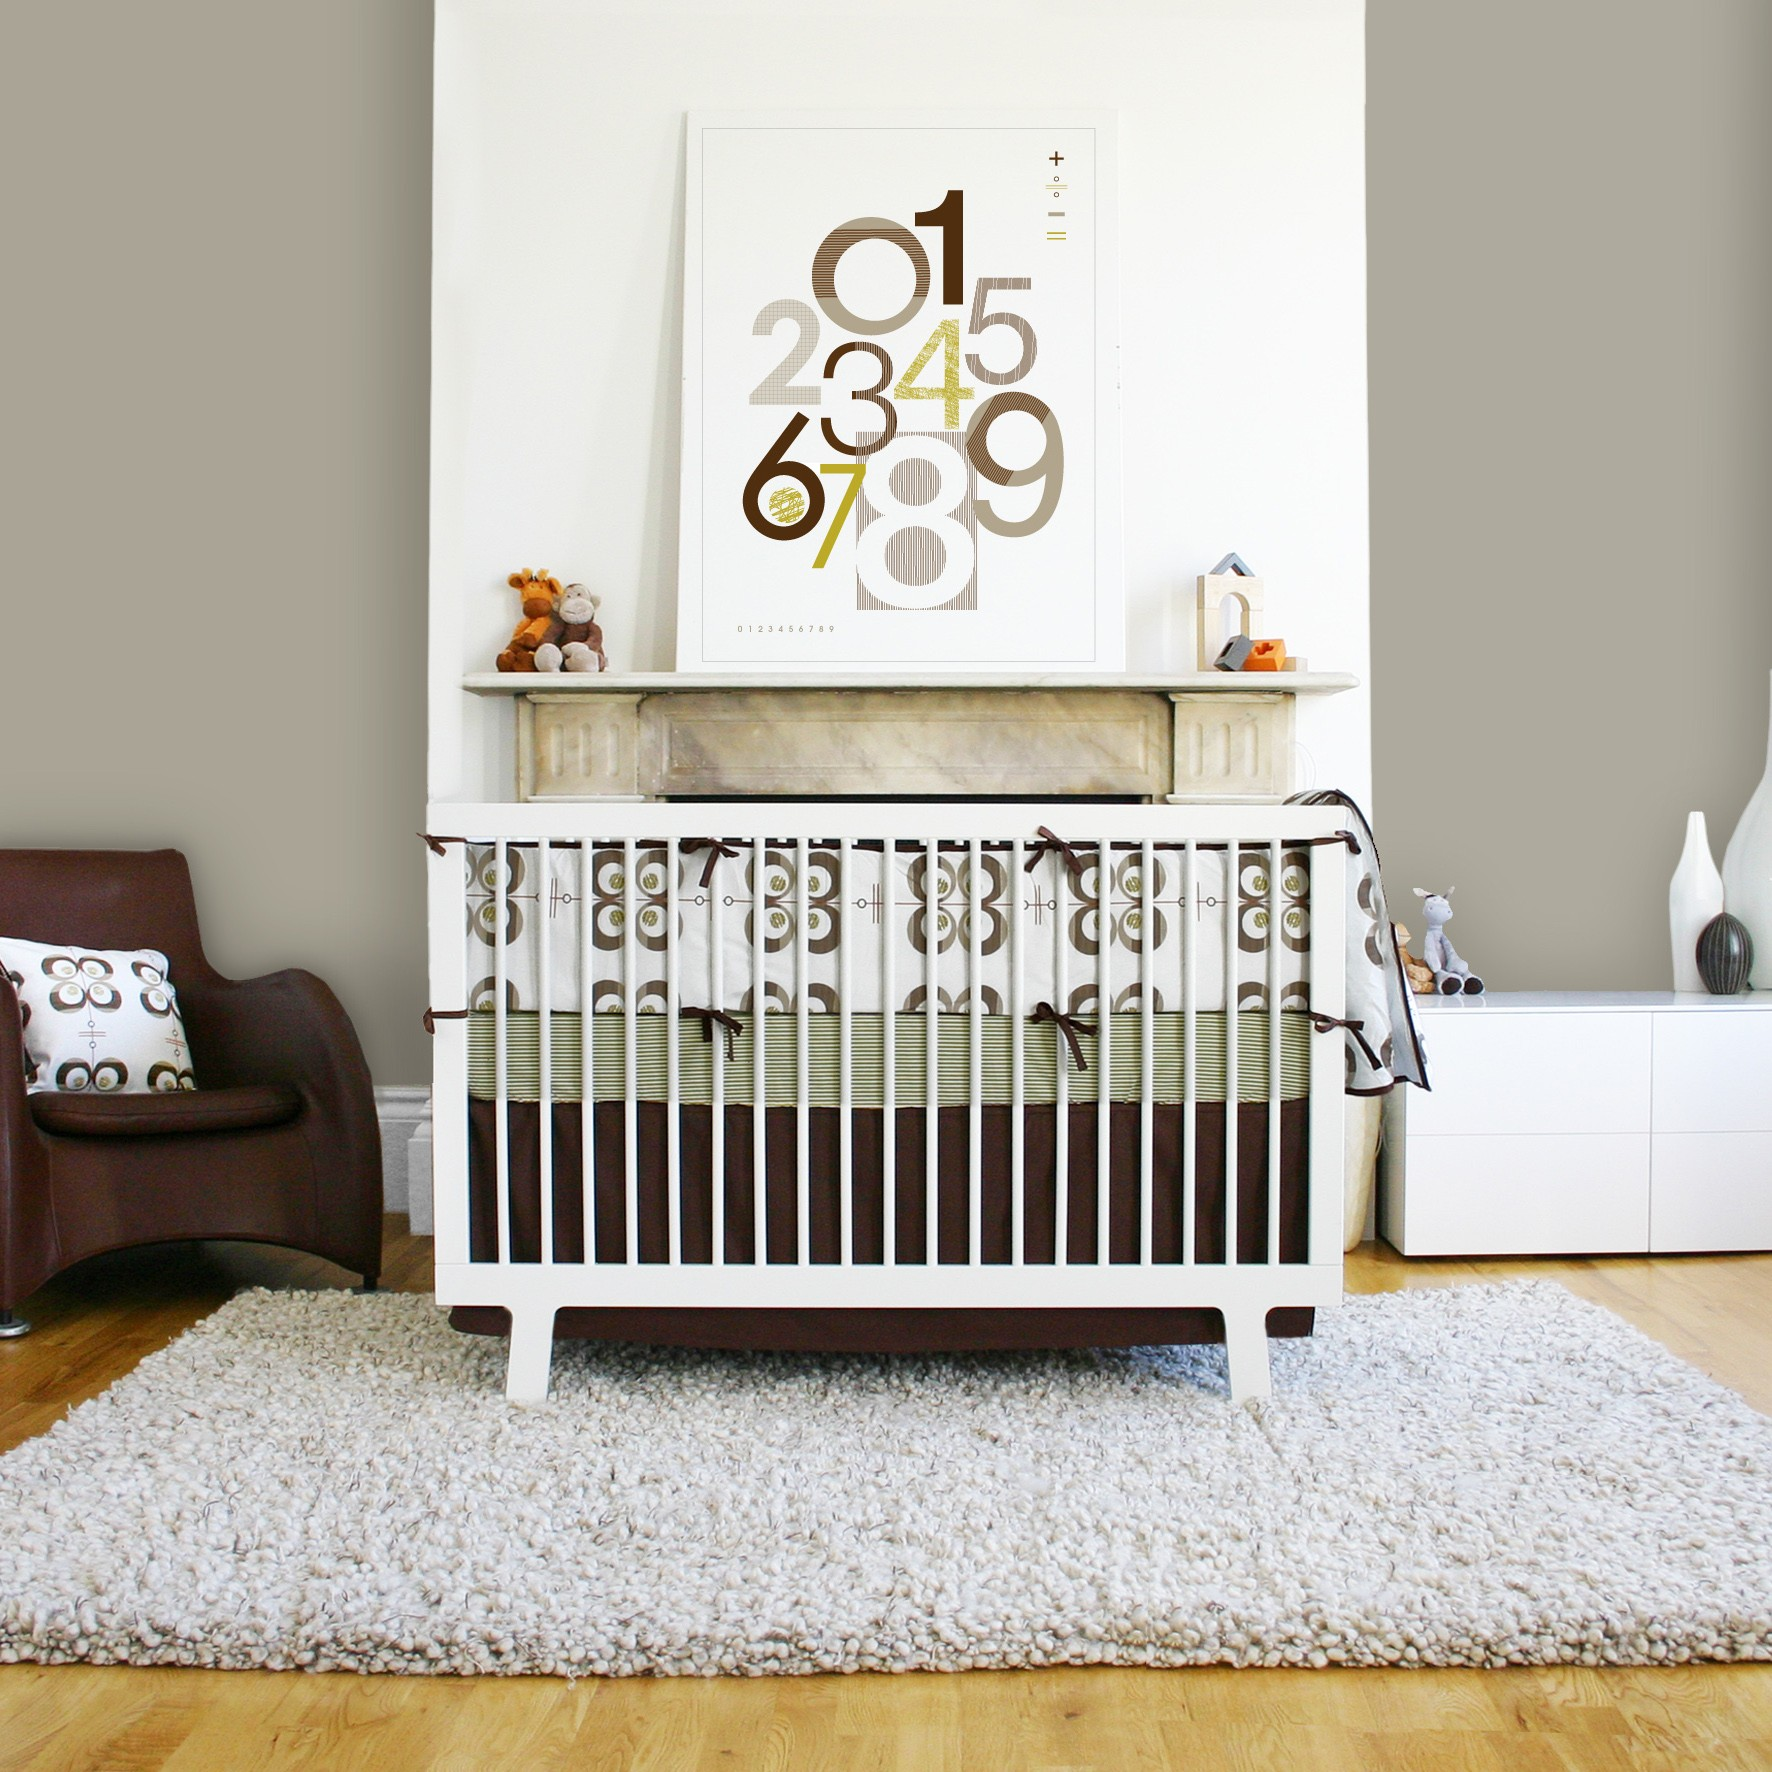 The Minimalist Design Of This Frame Has Exposed The Dotty And Striped  Pattern Of The Baby Crib Bedding Sets Which Can Improve The Modern Look Of  This Baby ...